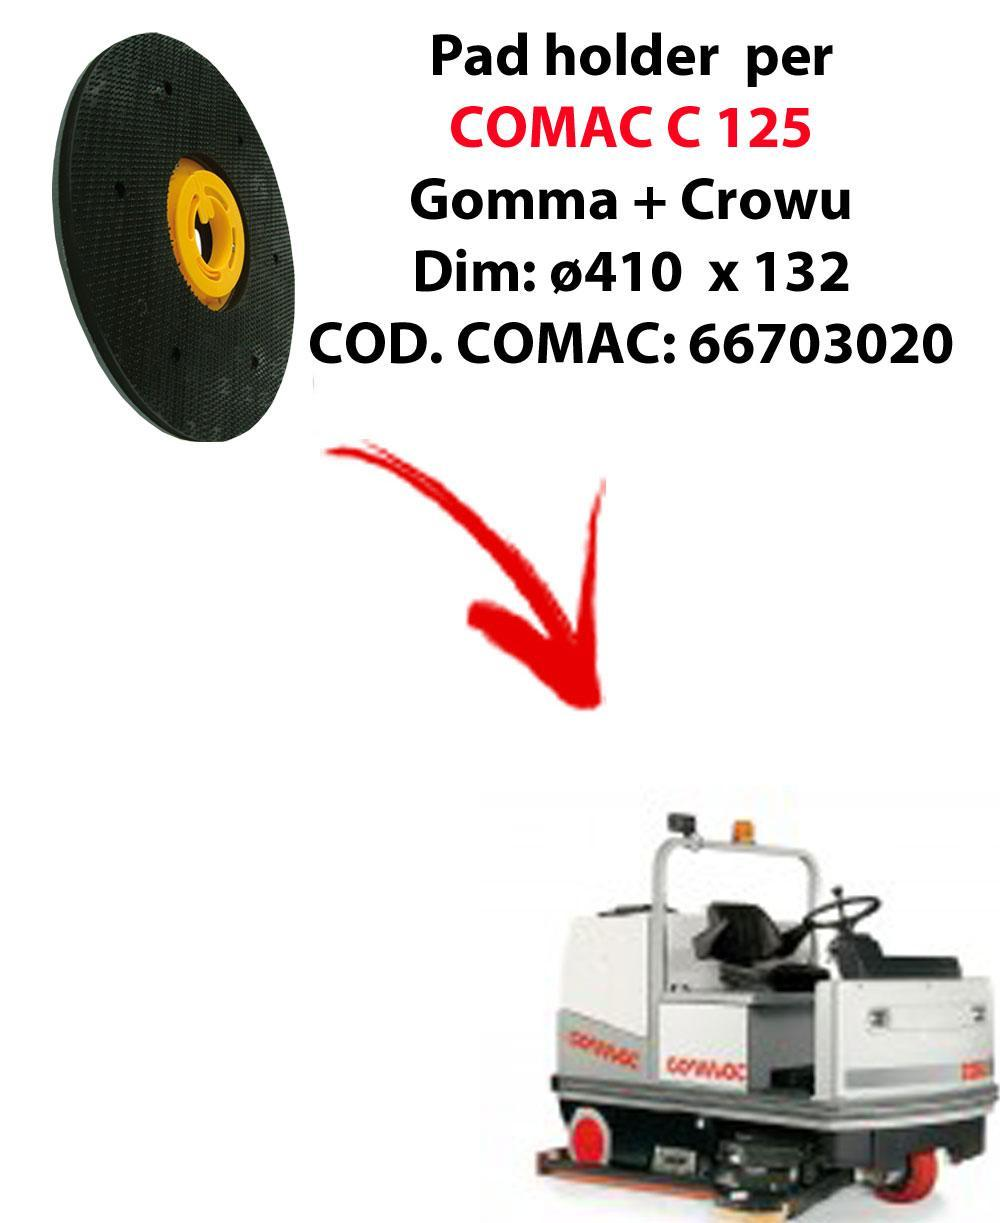 PAD HOLDER for scrubber dryer COMAC C 125. Code comac: 66703020